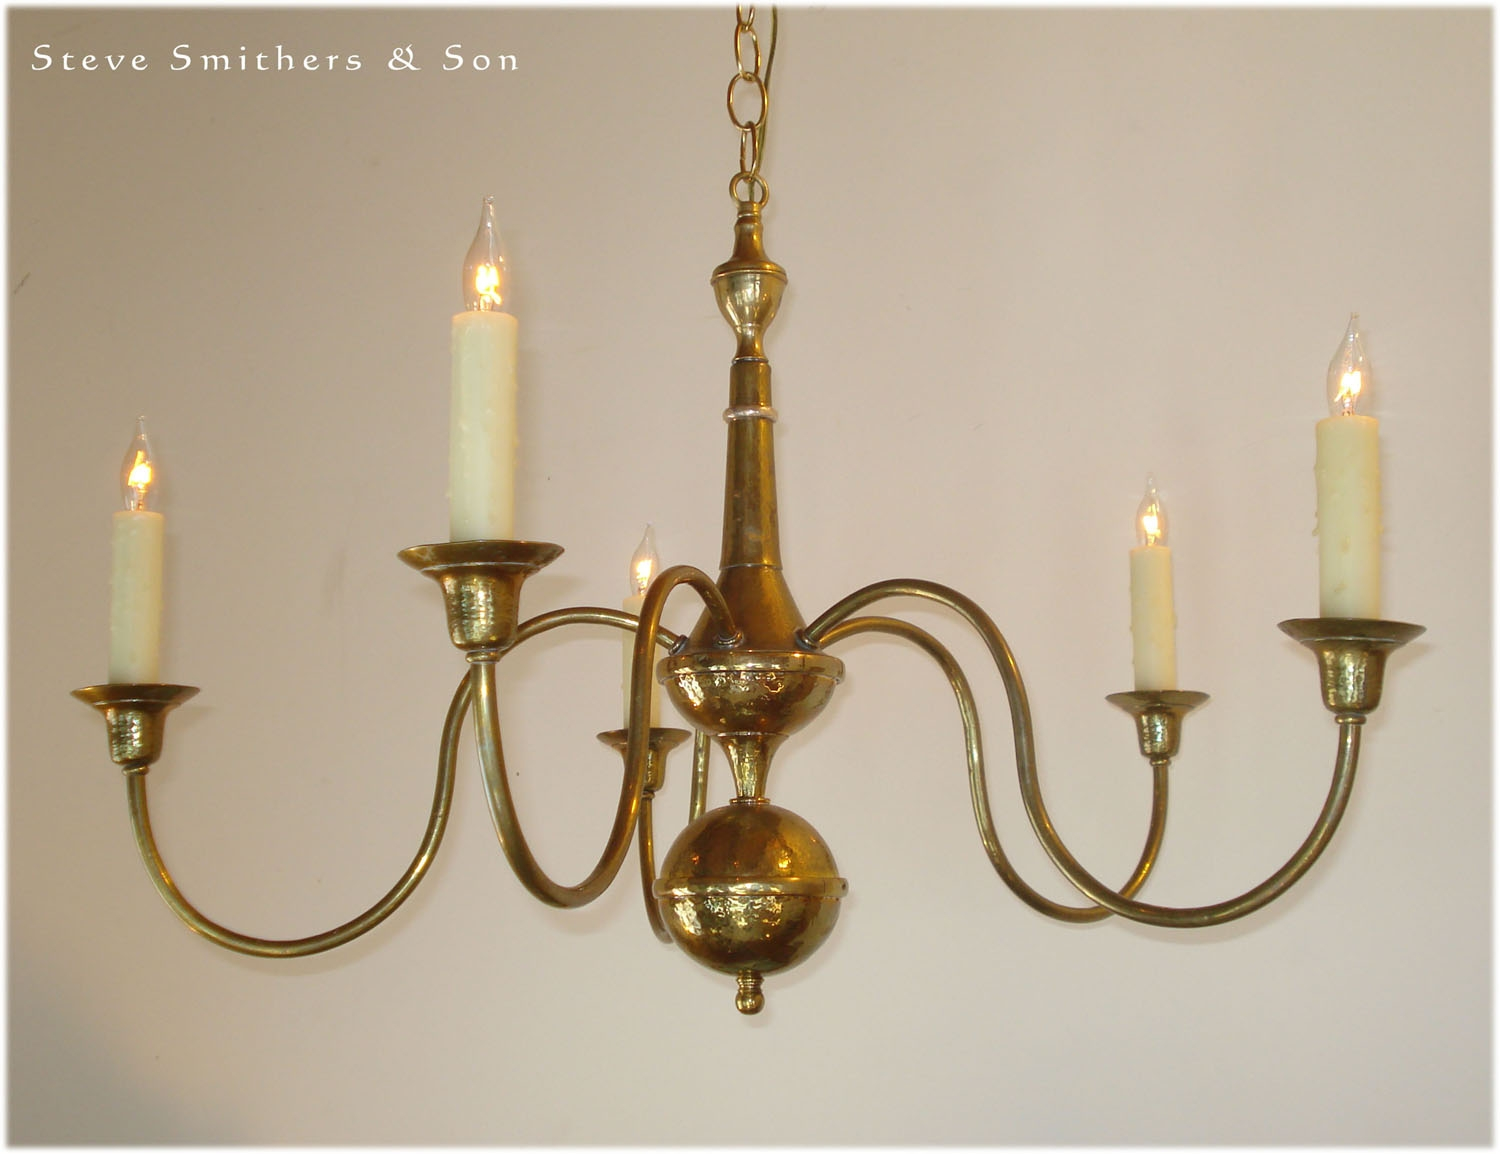 Handmade Brass Sconces Chandeliers Lamps Lanterns Regarding Brass Chandeliers (Image 8 of 15)